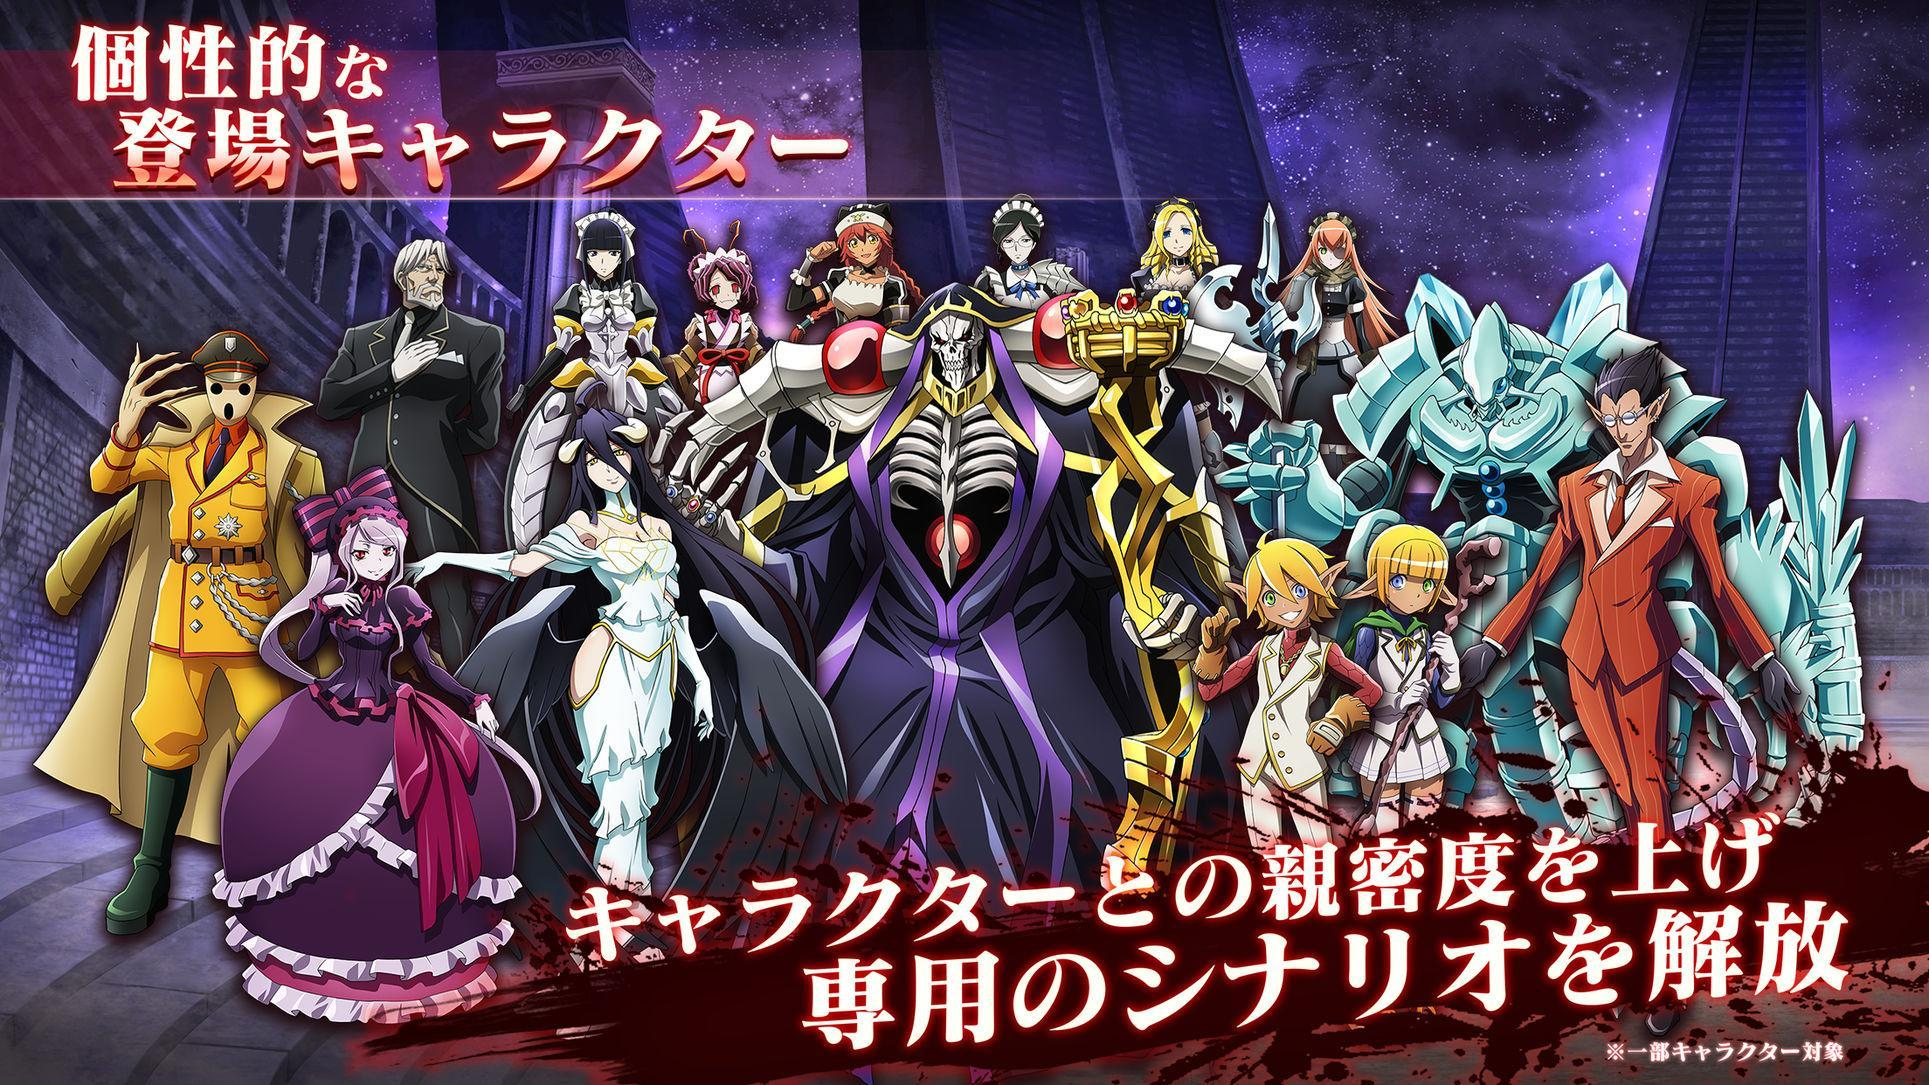 Mass For The Dead – Adapted From Popular Anime, Overlord